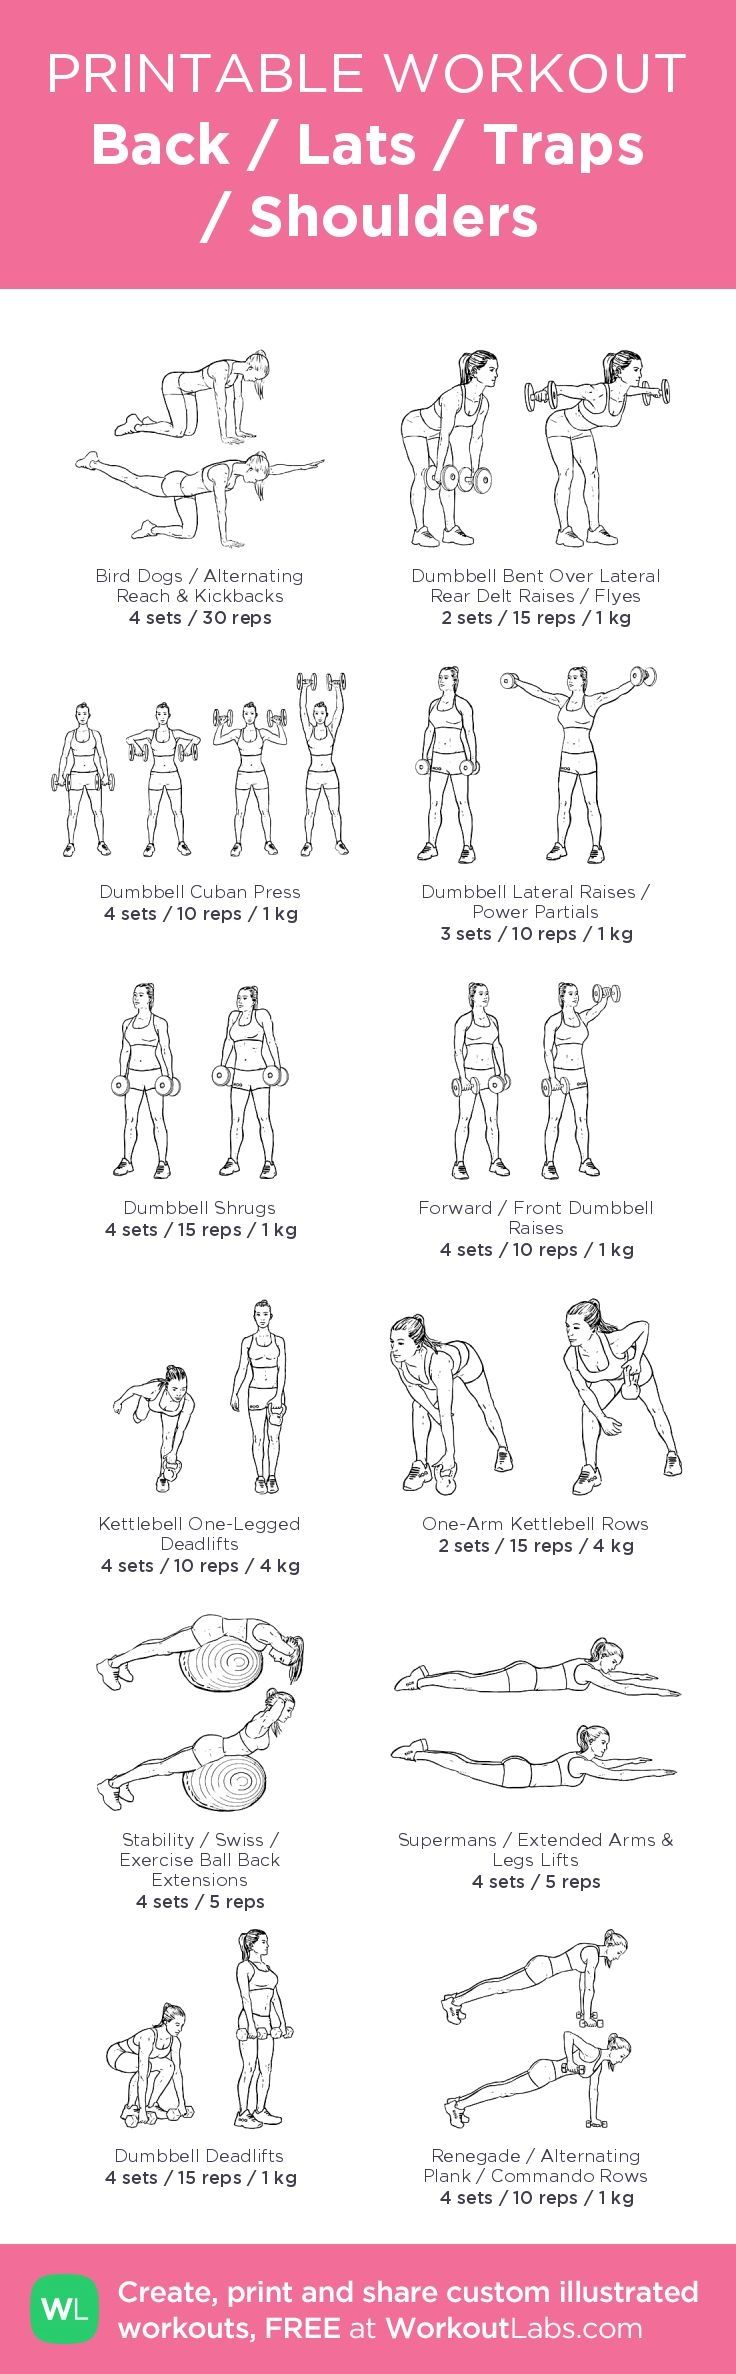 Back / Lats / Traps / Shoulders\u2013 my custom exercise plan created at http://WorkoutLabs.com \u2022 Click through to download as a printable workout PDF #customworkout #totalbodytransformation